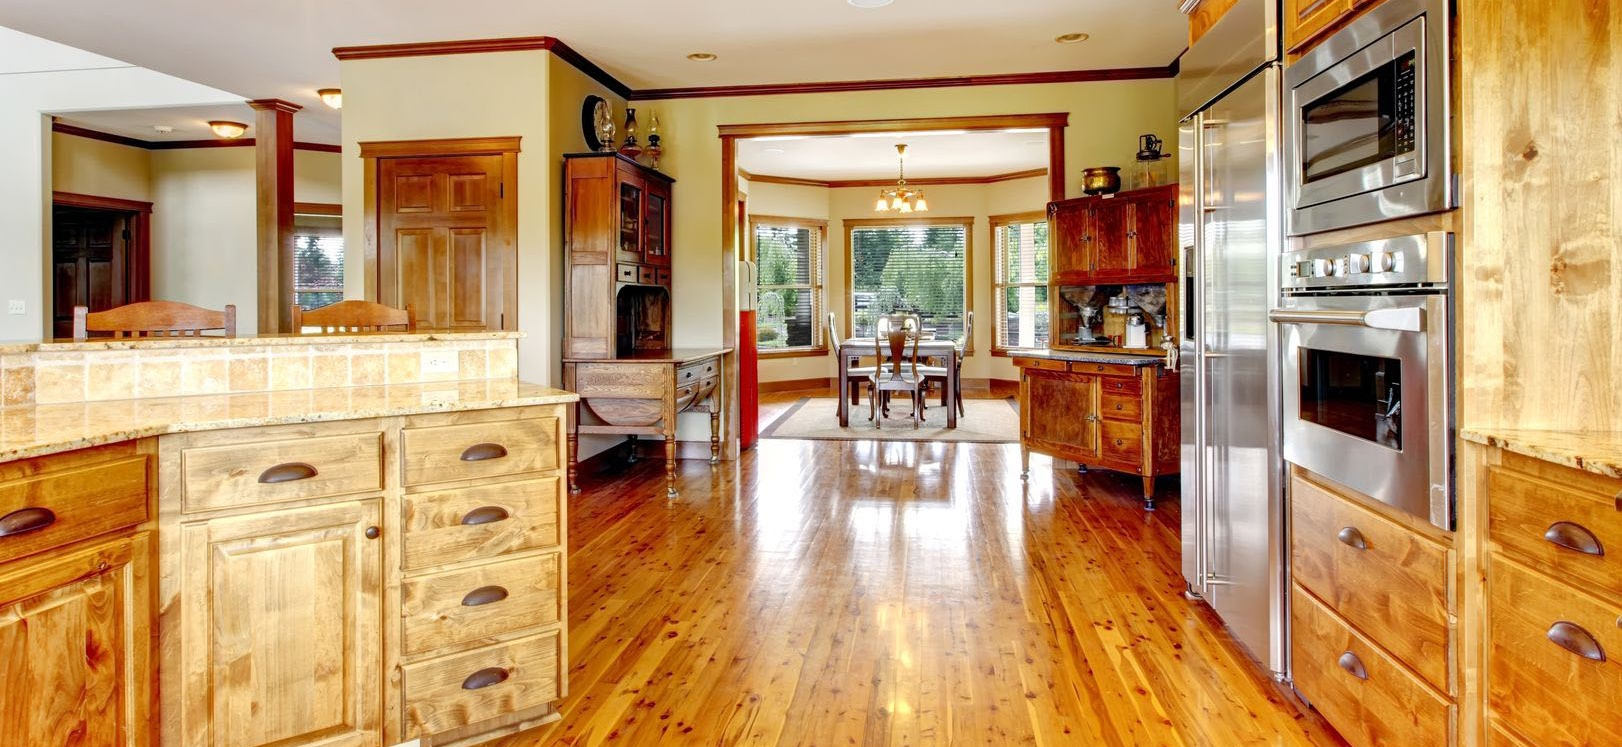 Kitchen and dining room in a home